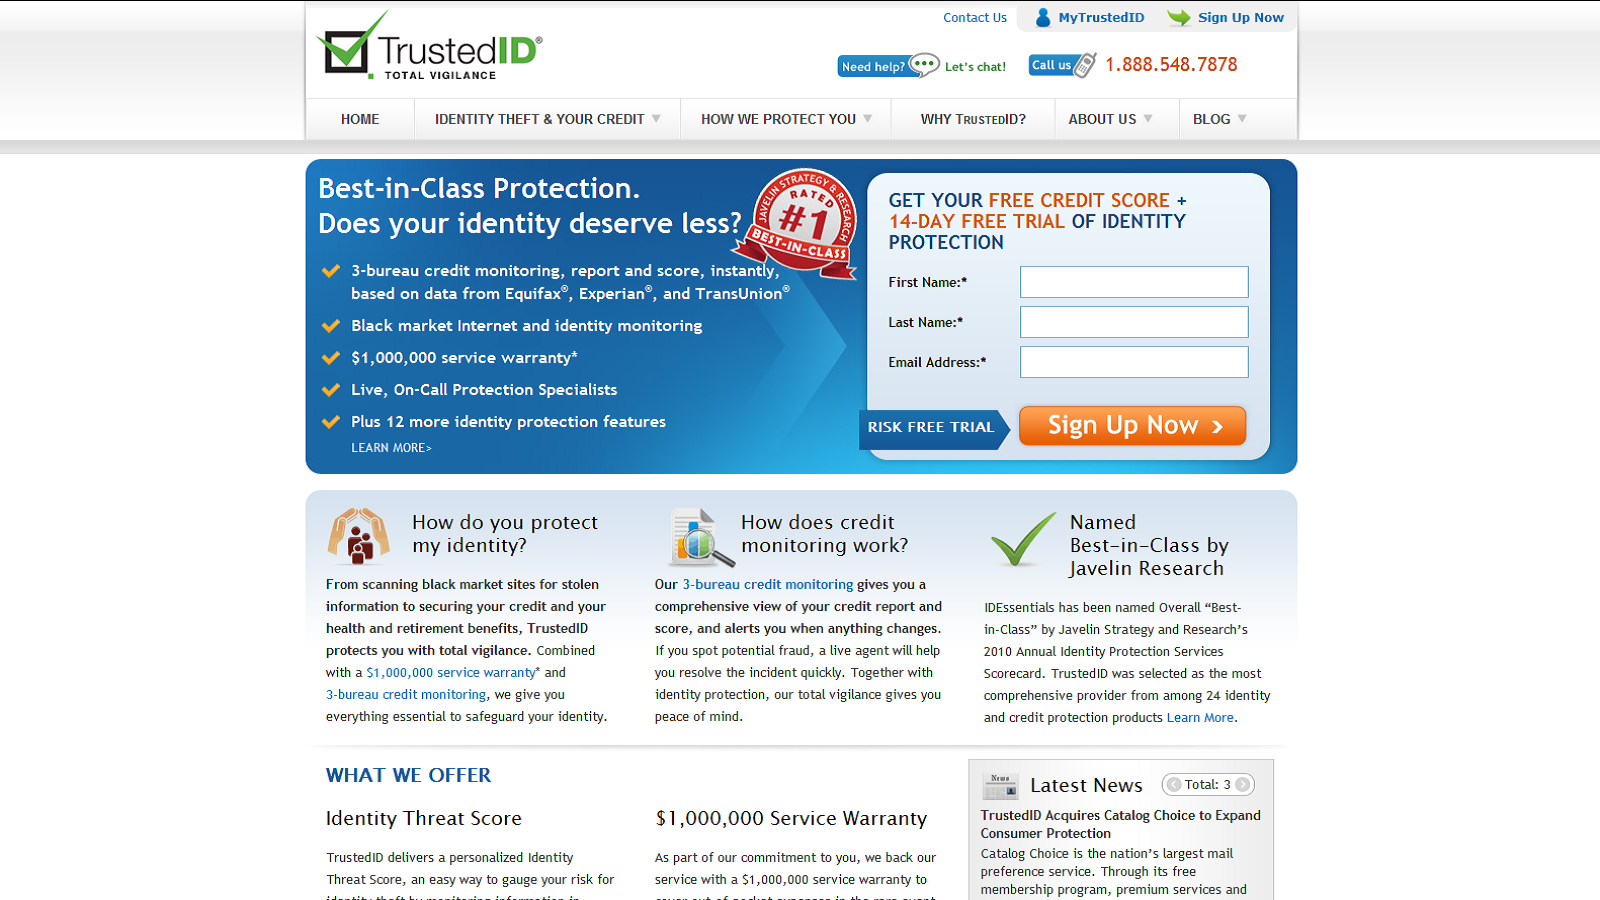 Get Your Credit Score and Try ID Protection For Free